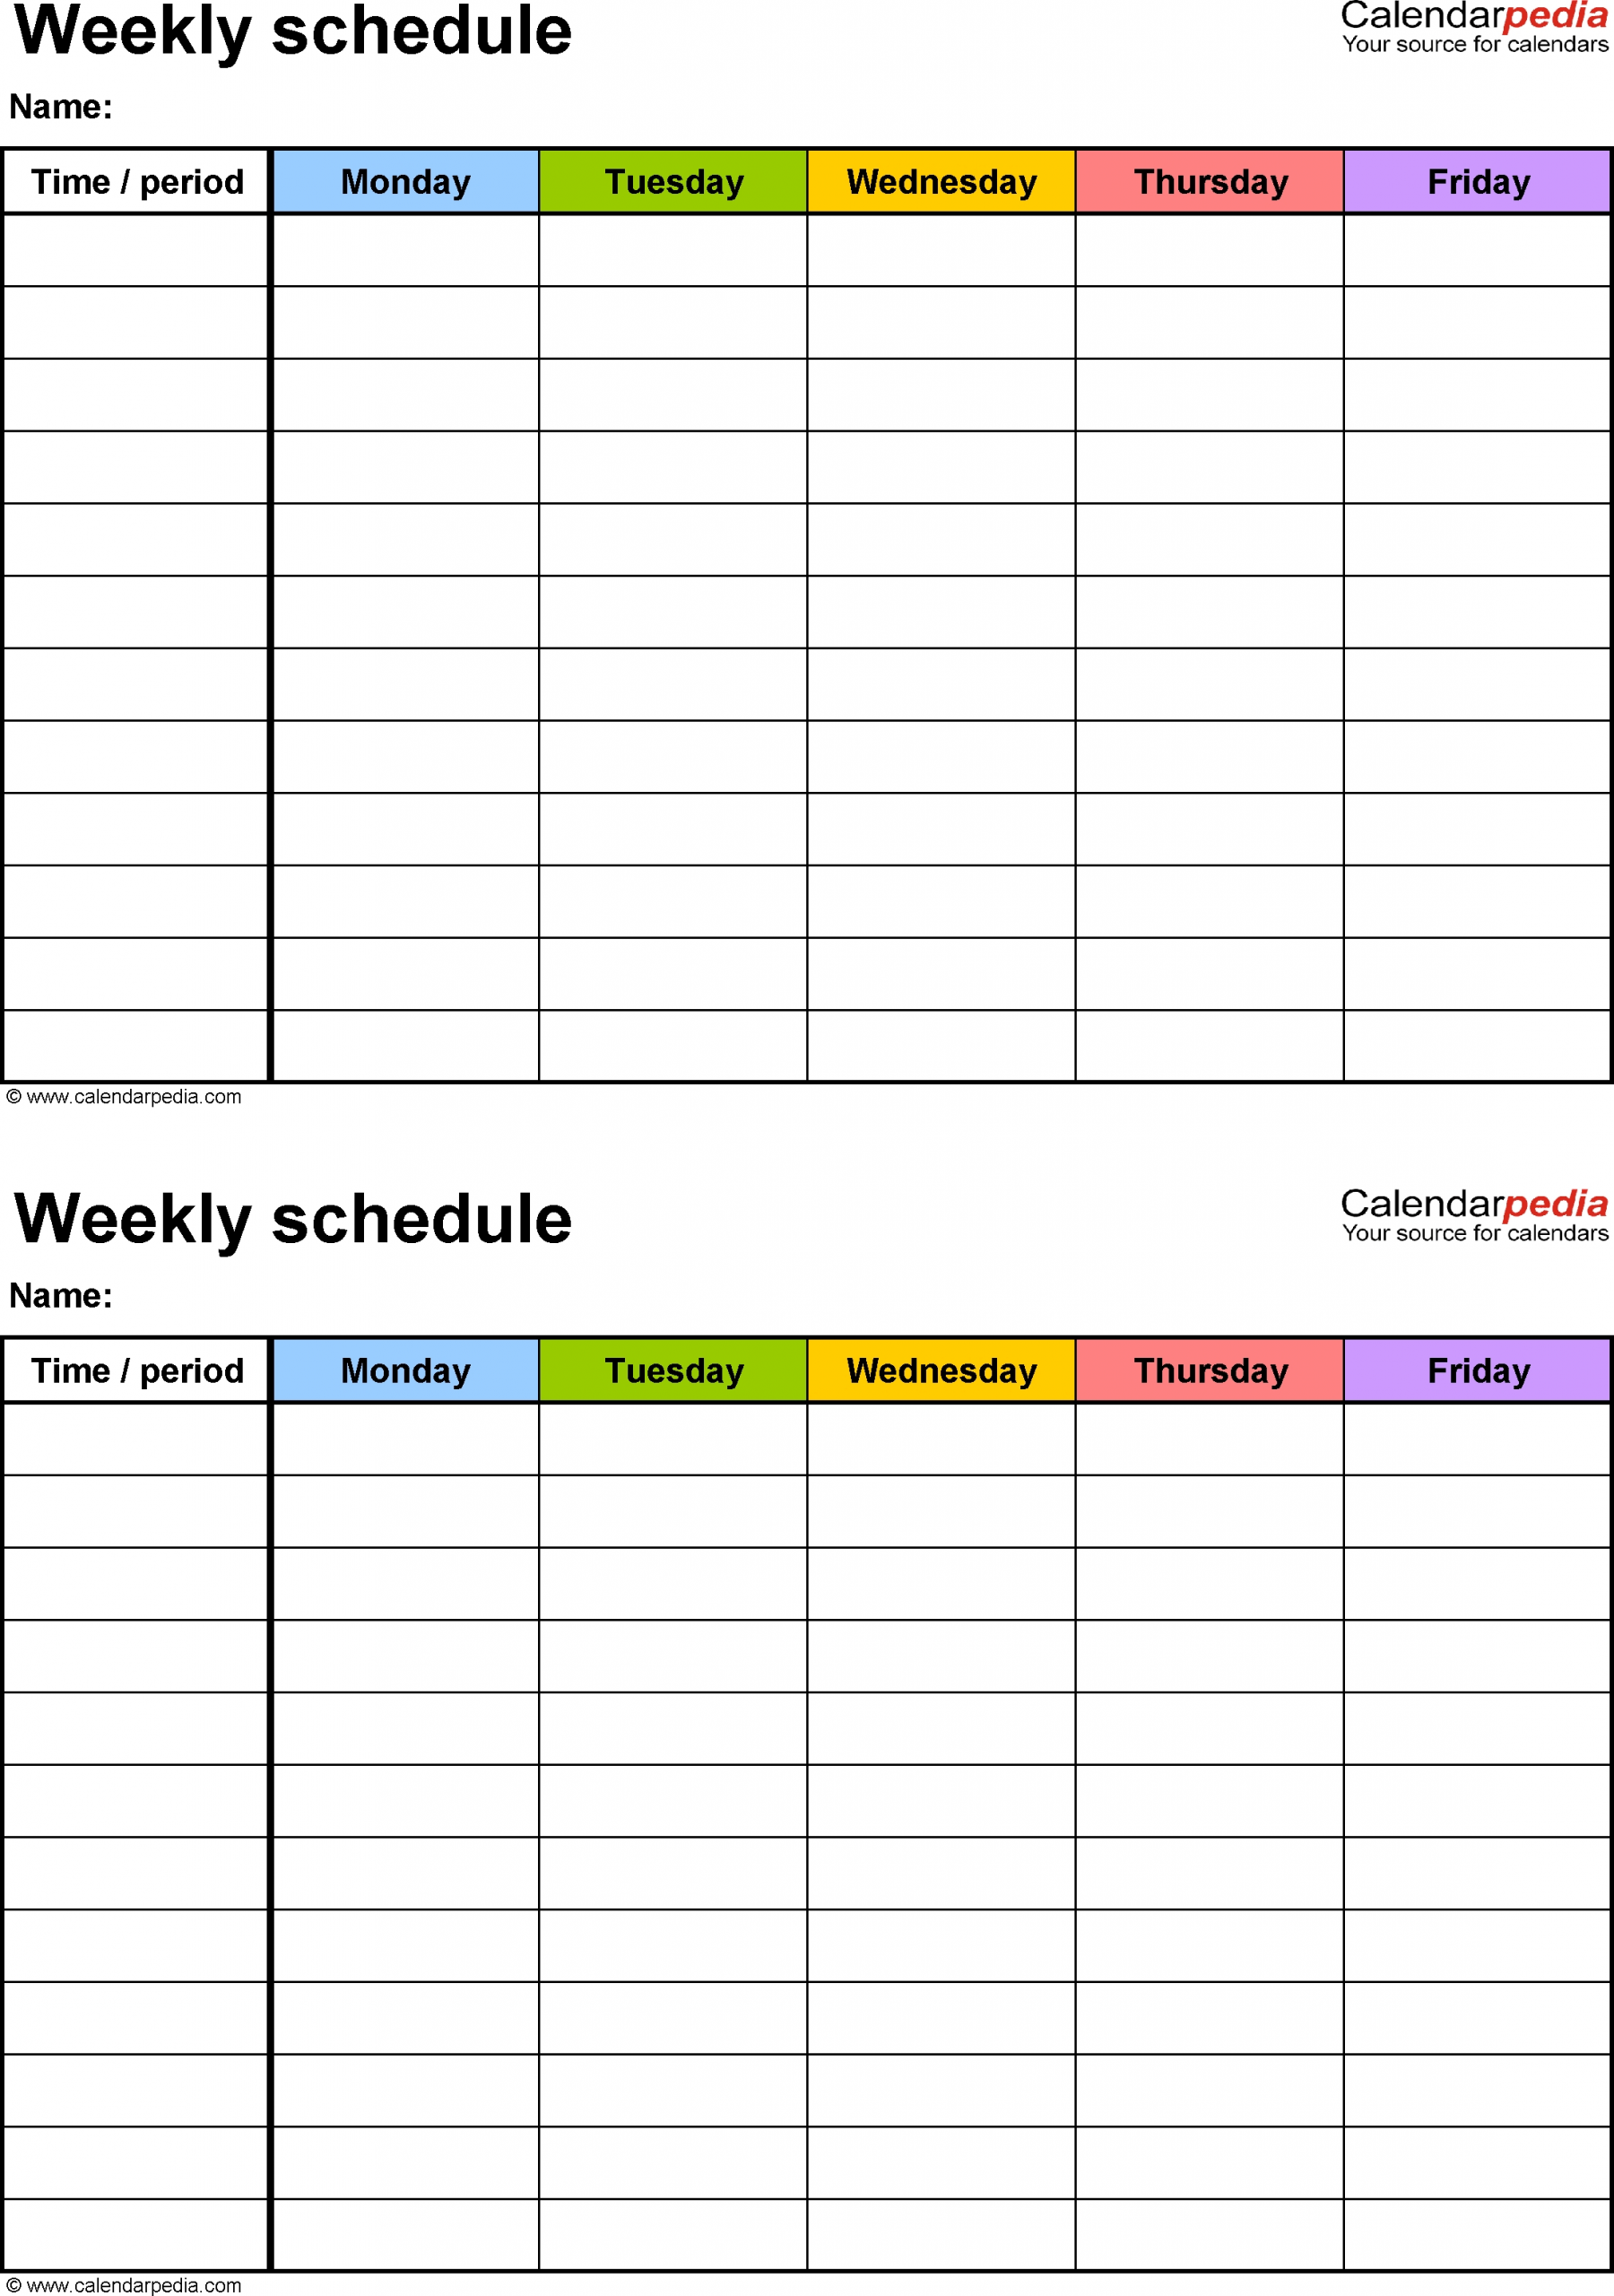 Monday To Friday Monthly Calendar Template | Calendar Monday To Friday Template